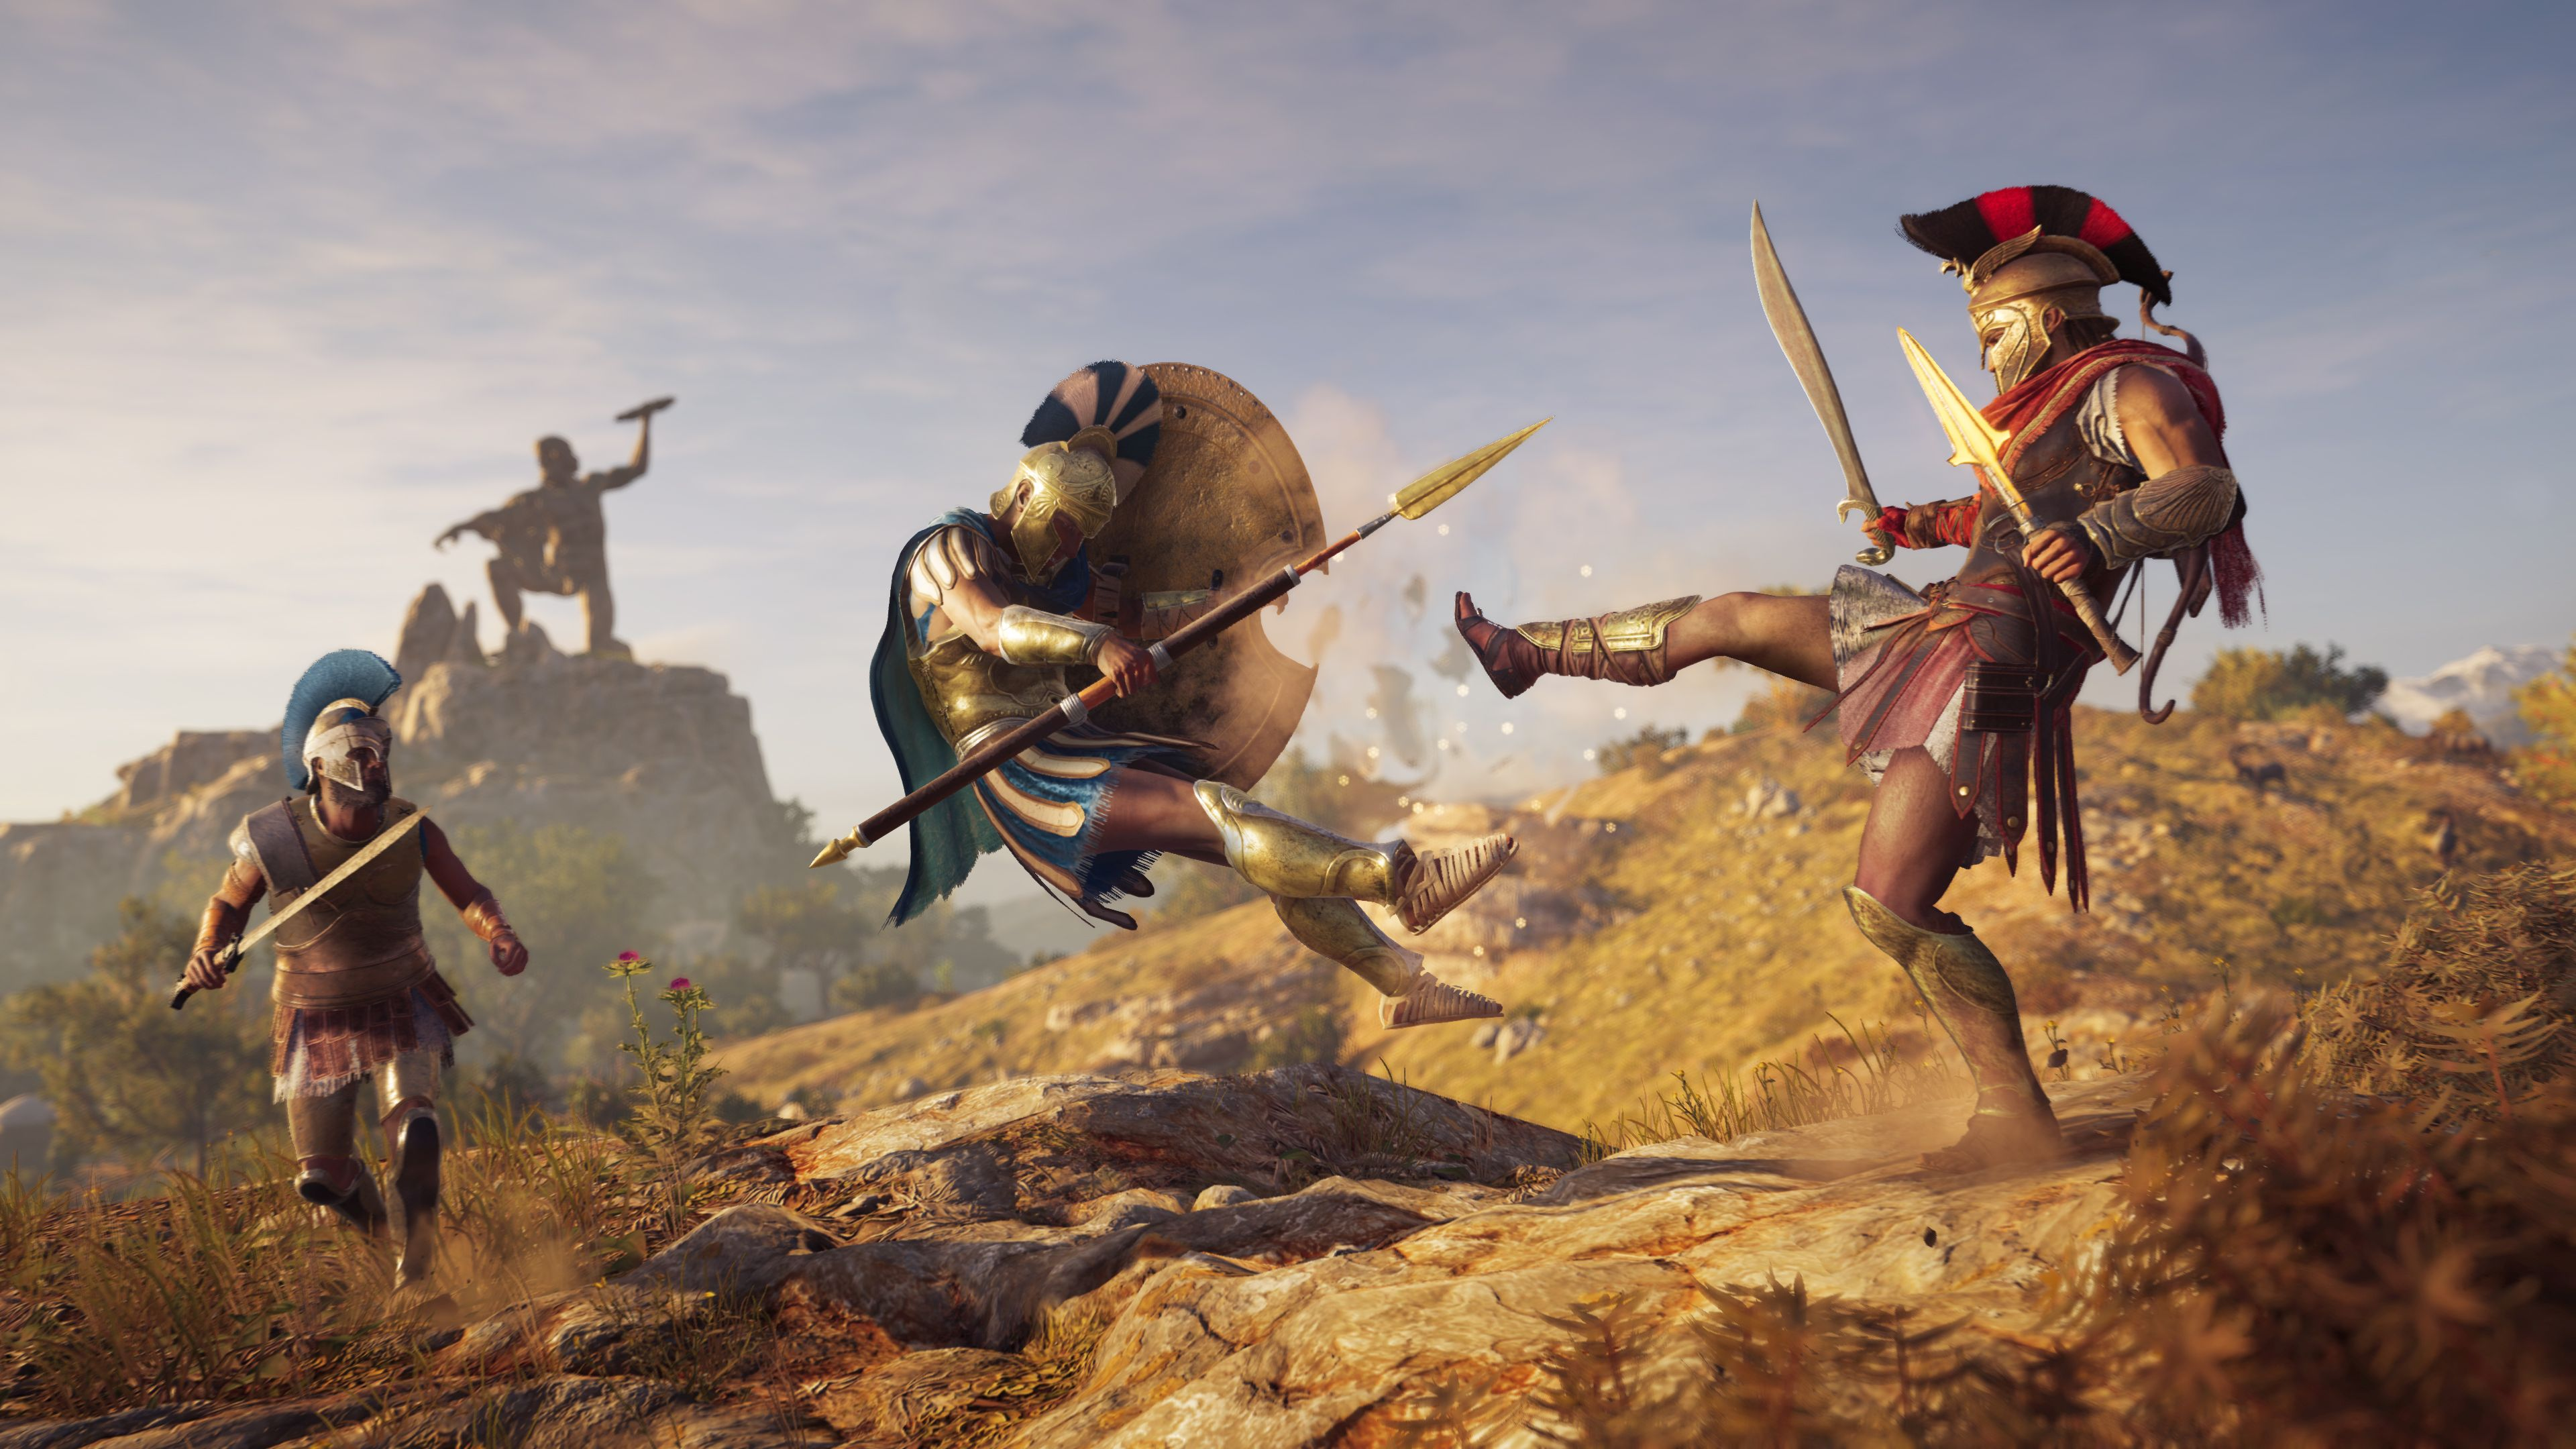 No Assassin's Creed game in 2019, Ubisoft says